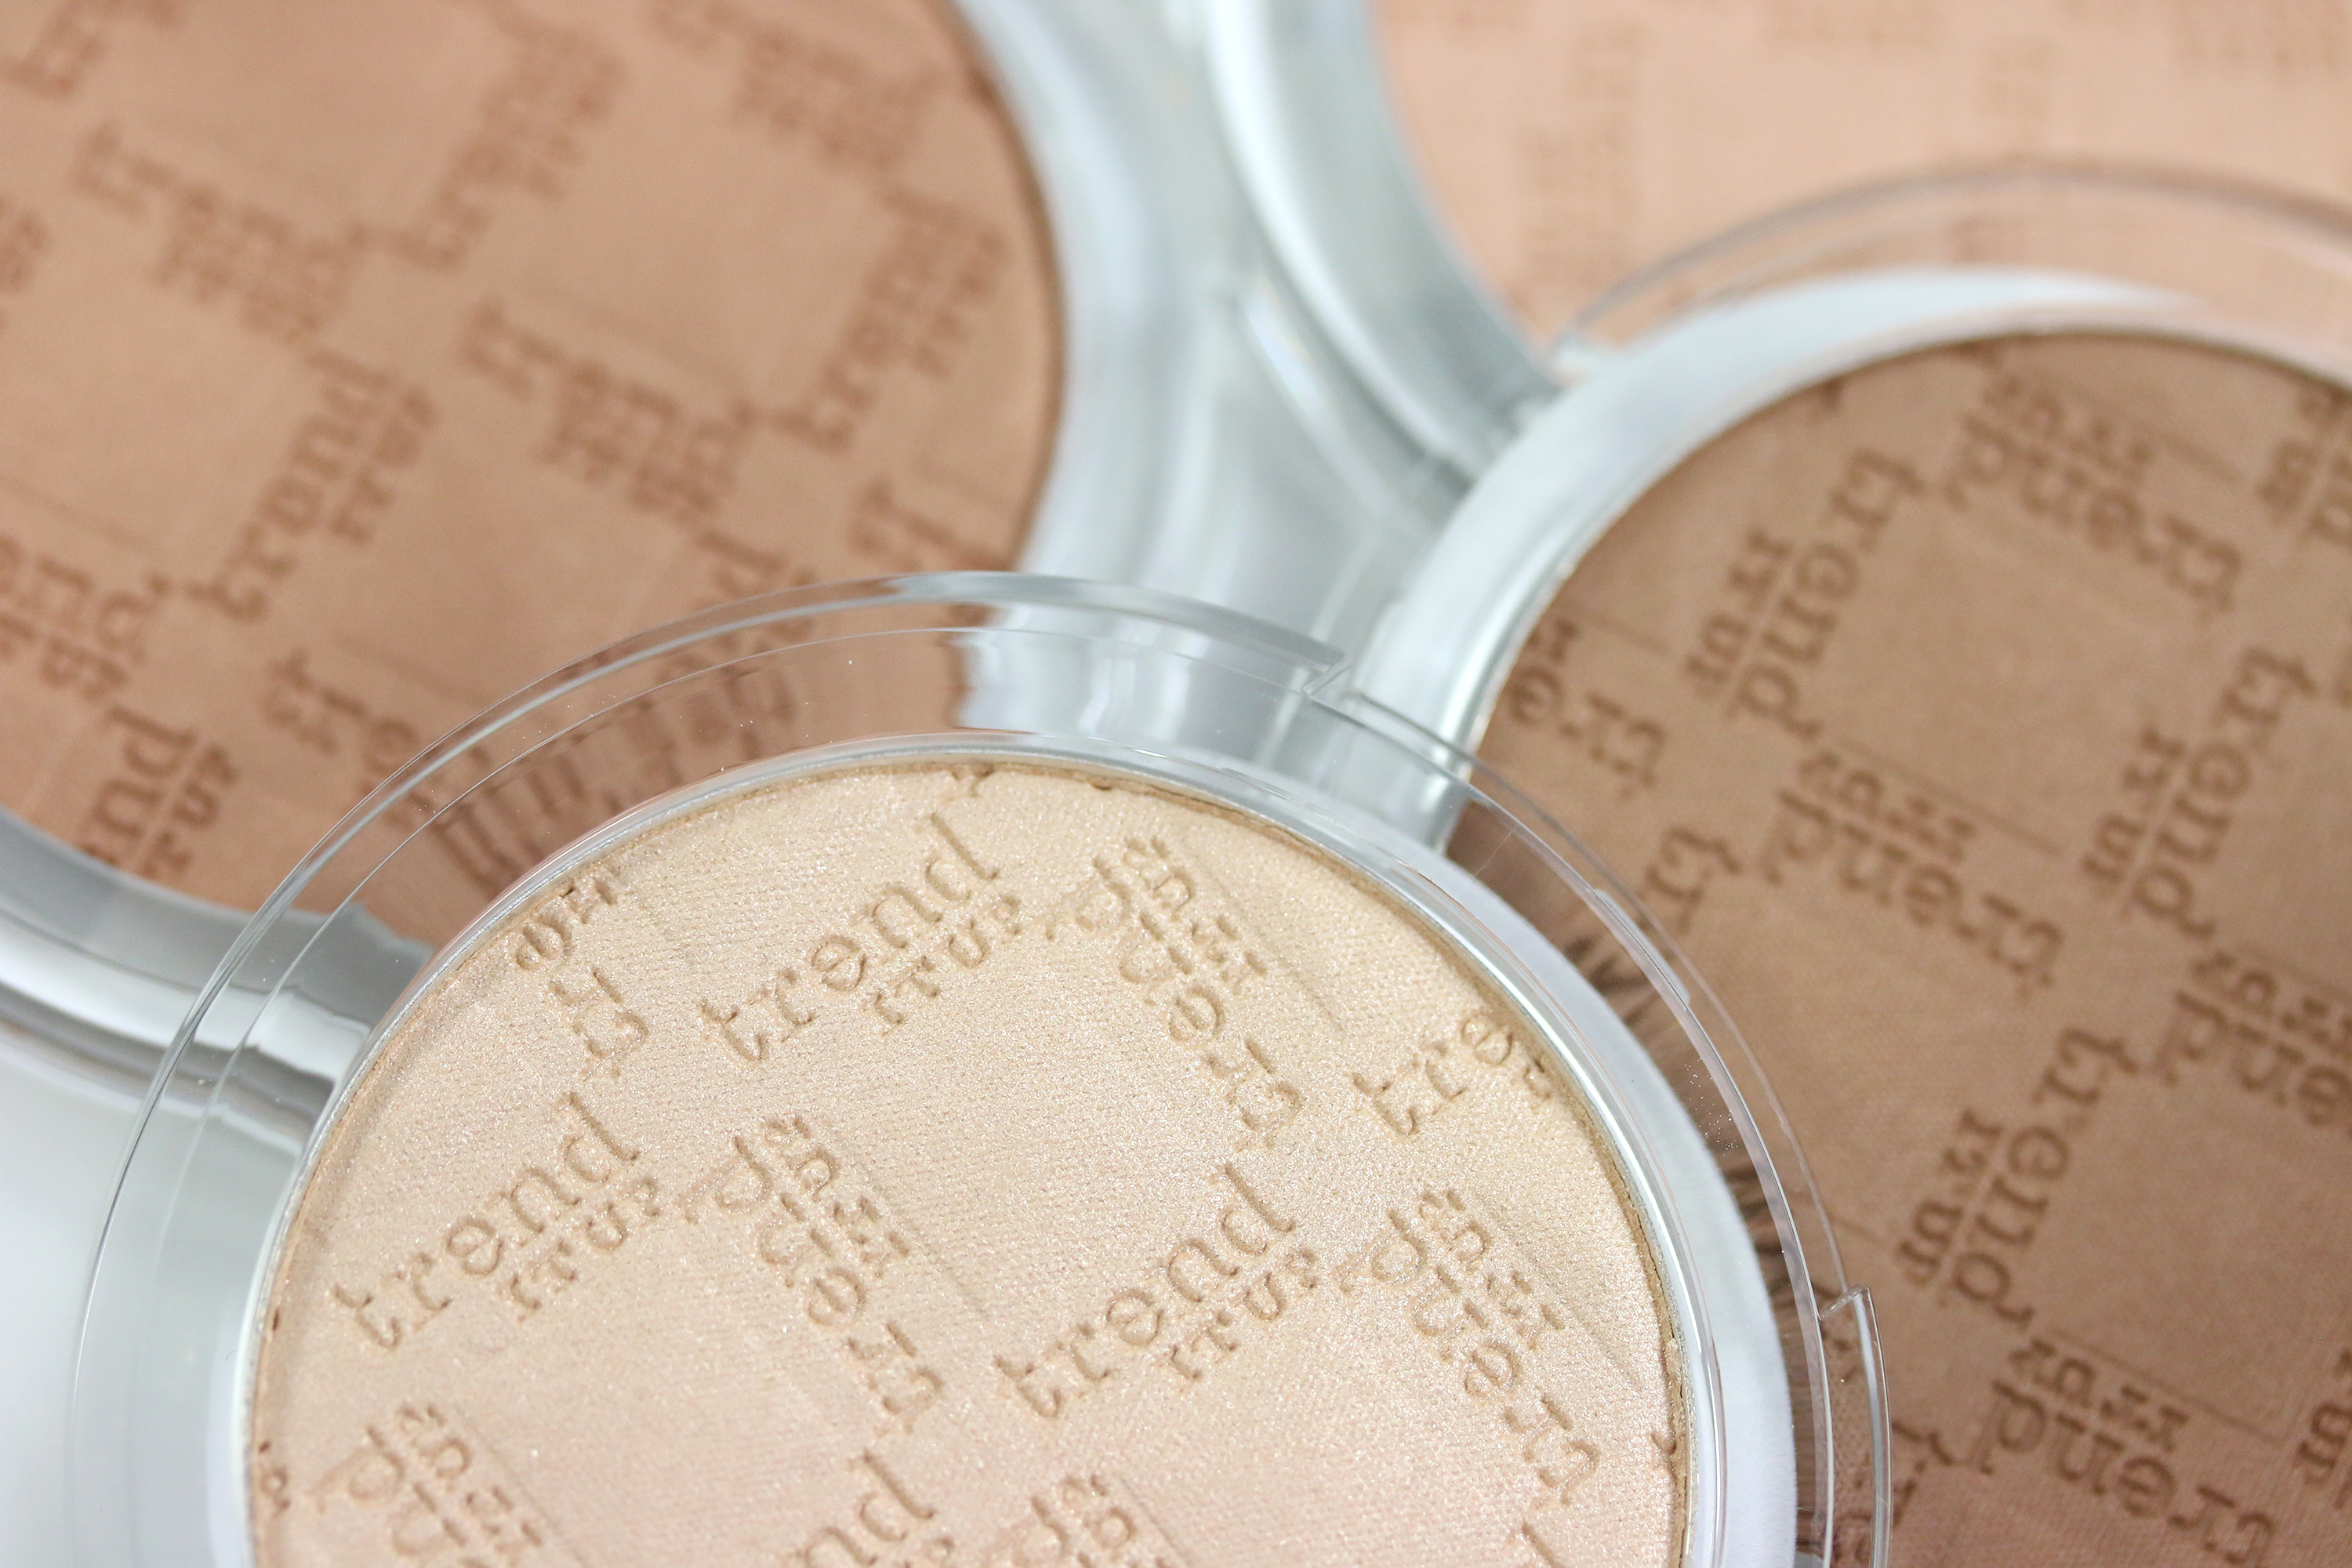 trend-it-up-higlighter-bronzer